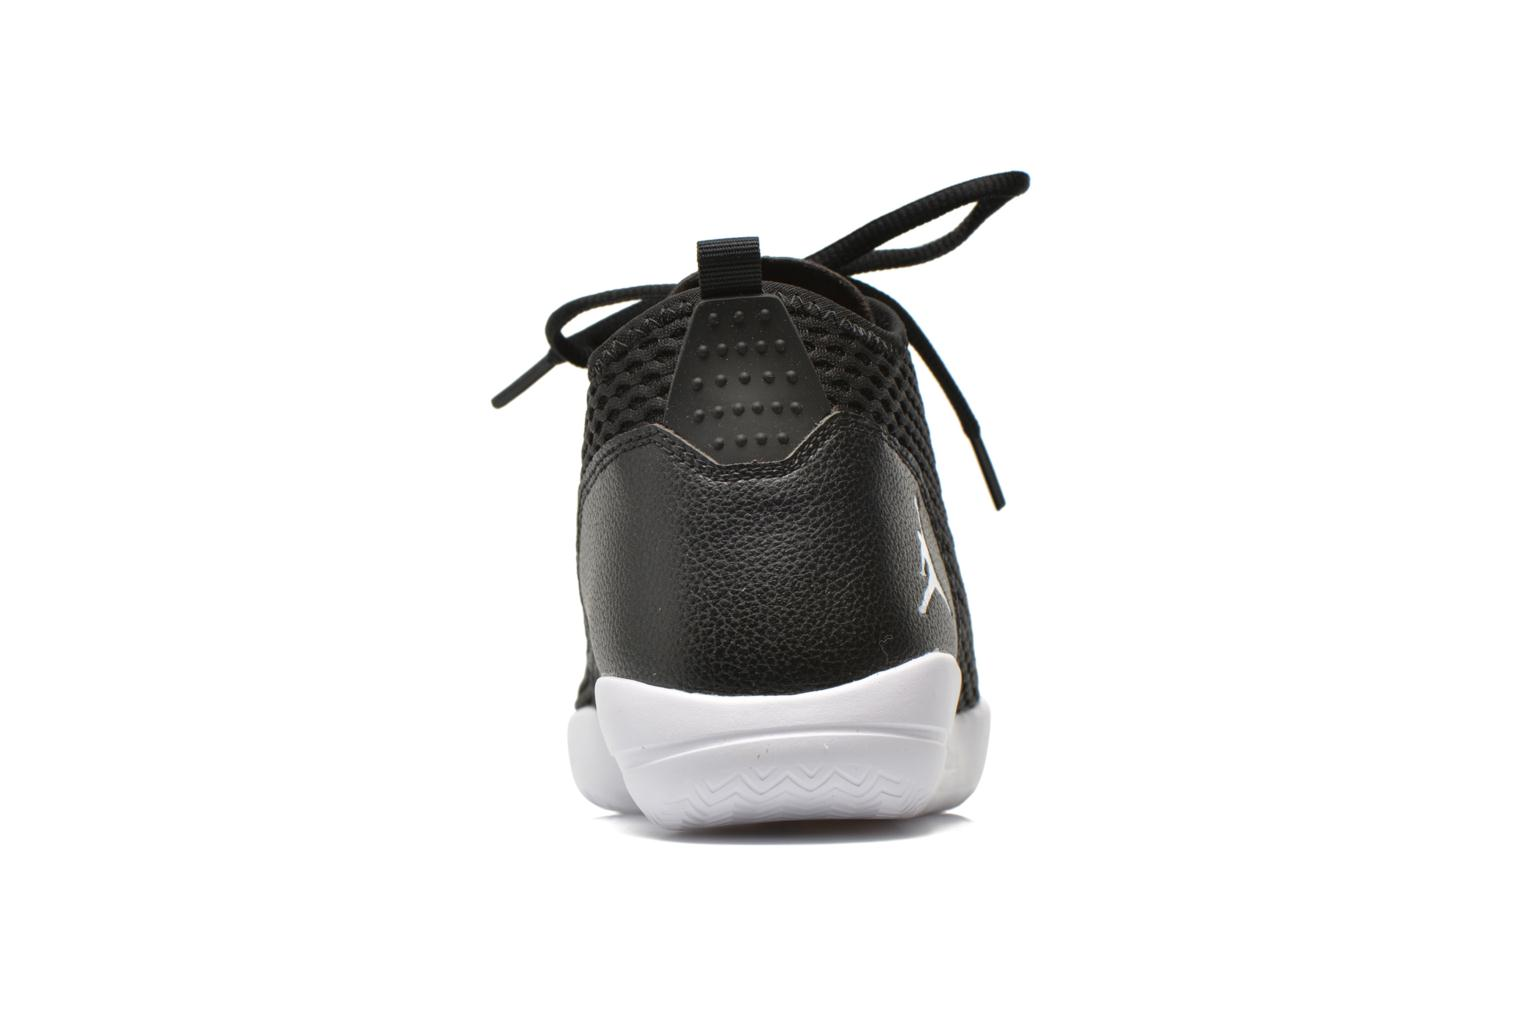 Jordan Reveal Bg Black/White-Black-White